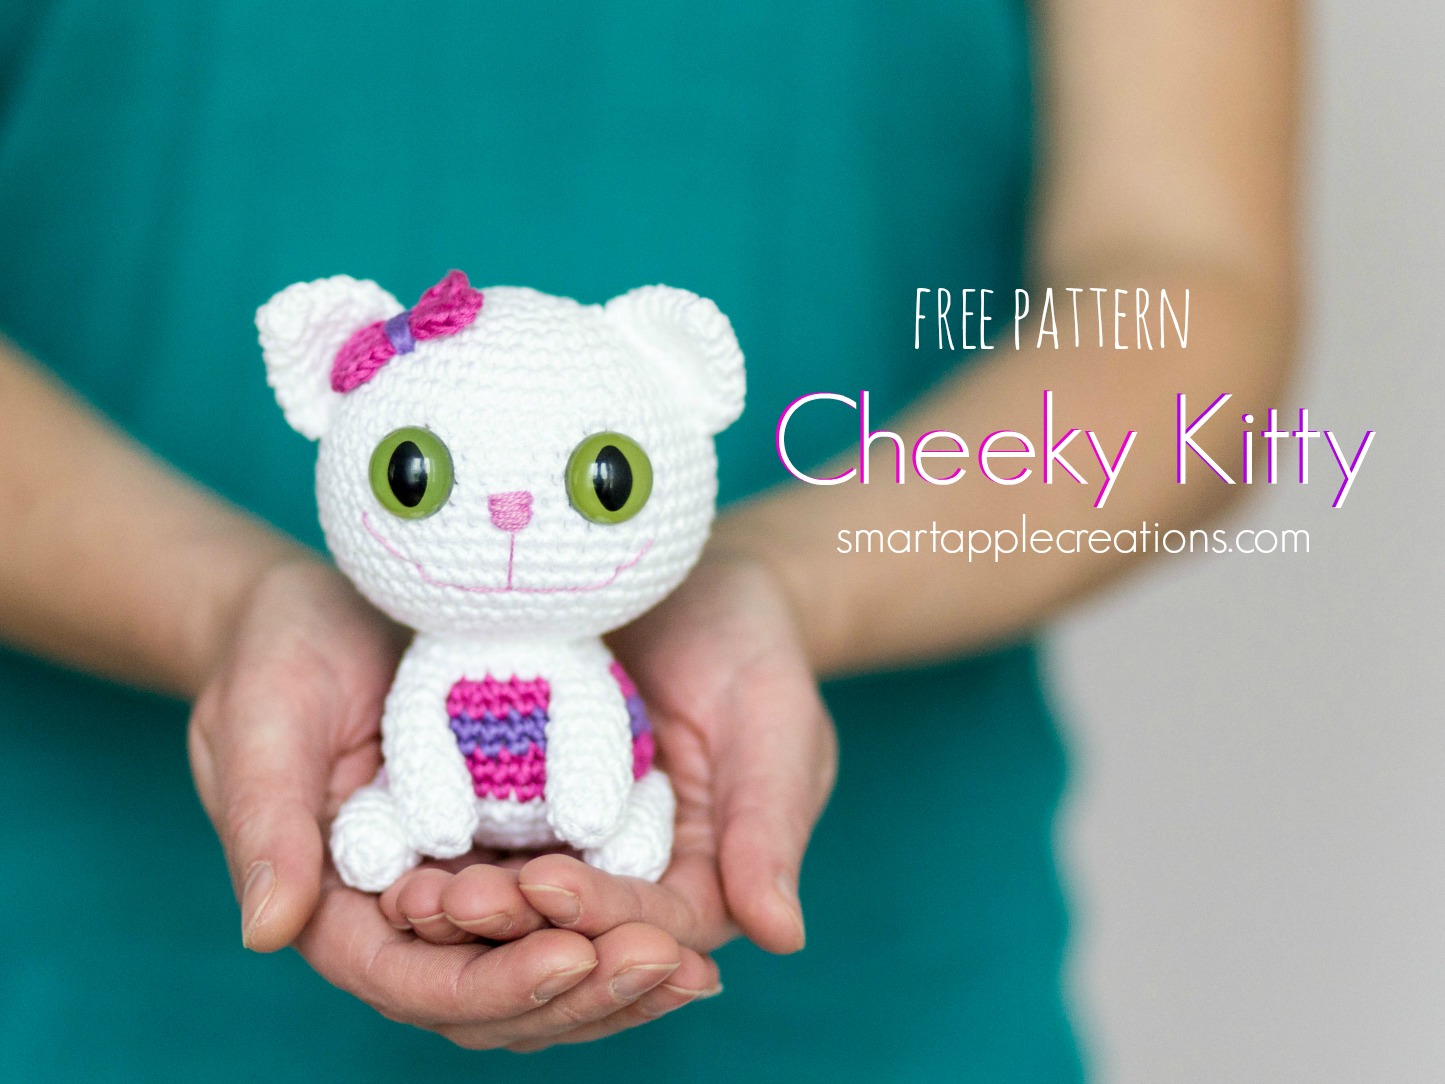 Smartapple creations amigurumi and crochet freebies thank you and enjoy bankloansurffo Image collections